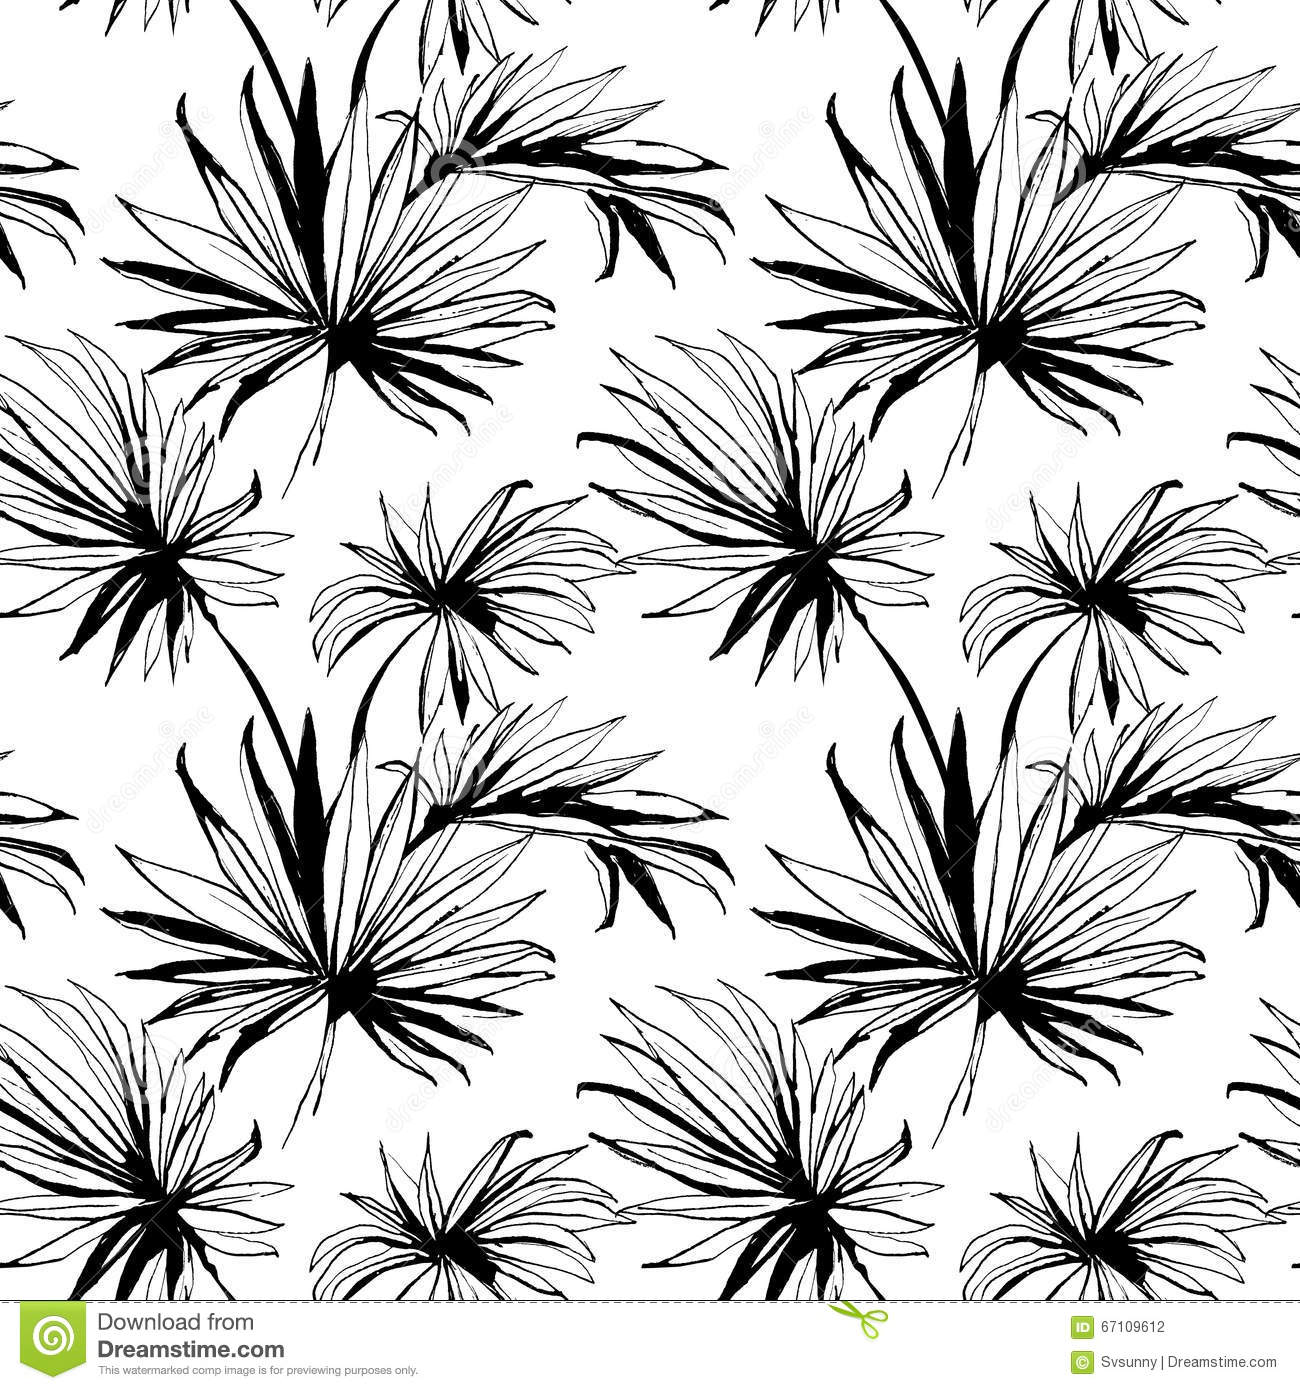 Tropical jungle floral seamless pattern background with palm le